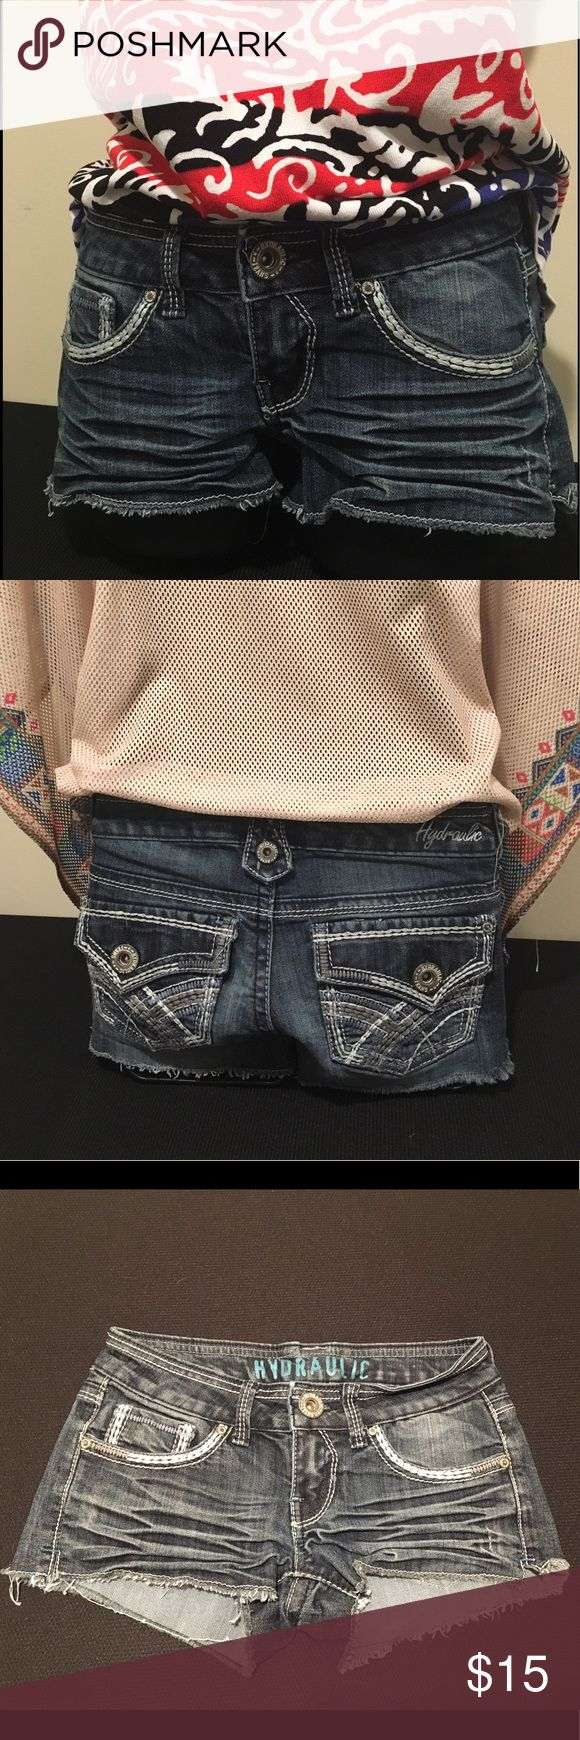 Hydraulic Jean denim shorts Hydraulic Jeans denim short-shorts, cheeky low rise, factory distressed, embroidery detailing on pockets. See photos for measurements. In excellent condition. Smoke-free home. Hydraulic Shorts Jean Shorts